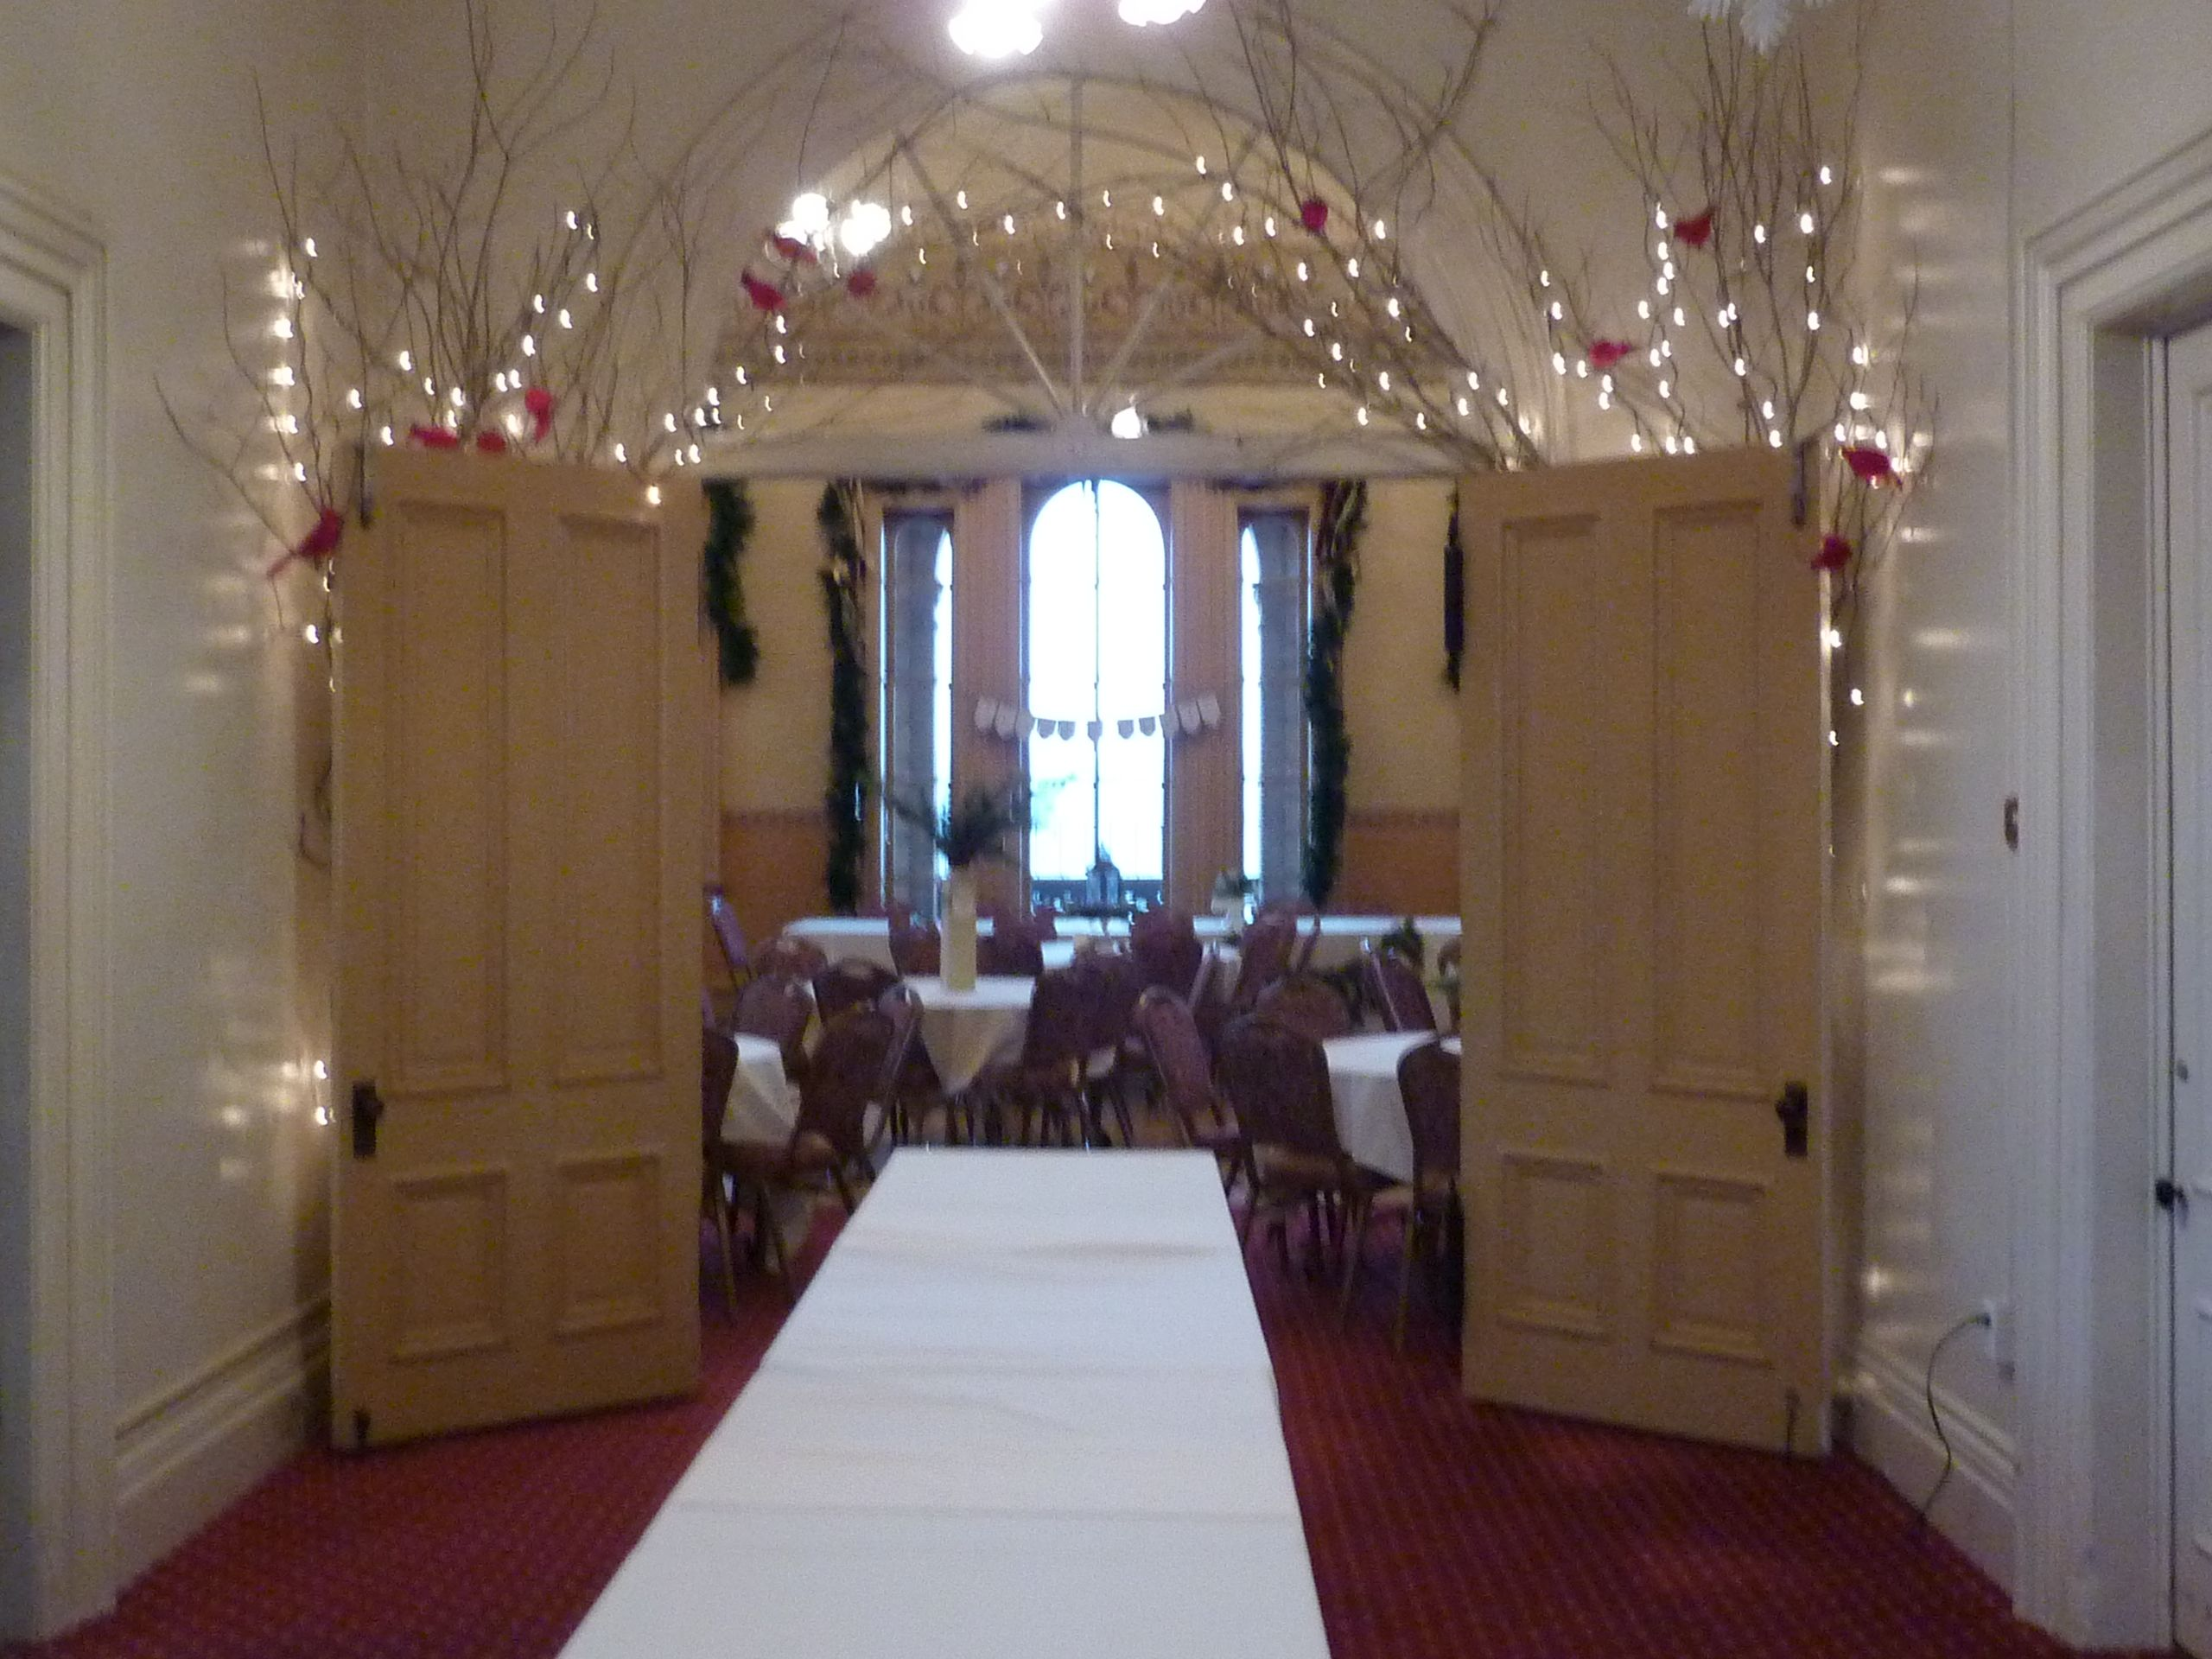 affordable wedding reception venues minnesota%0A Winter decorations for a Christmas wedding at the Washington County  Historic Courthouse in Stillwater  MN